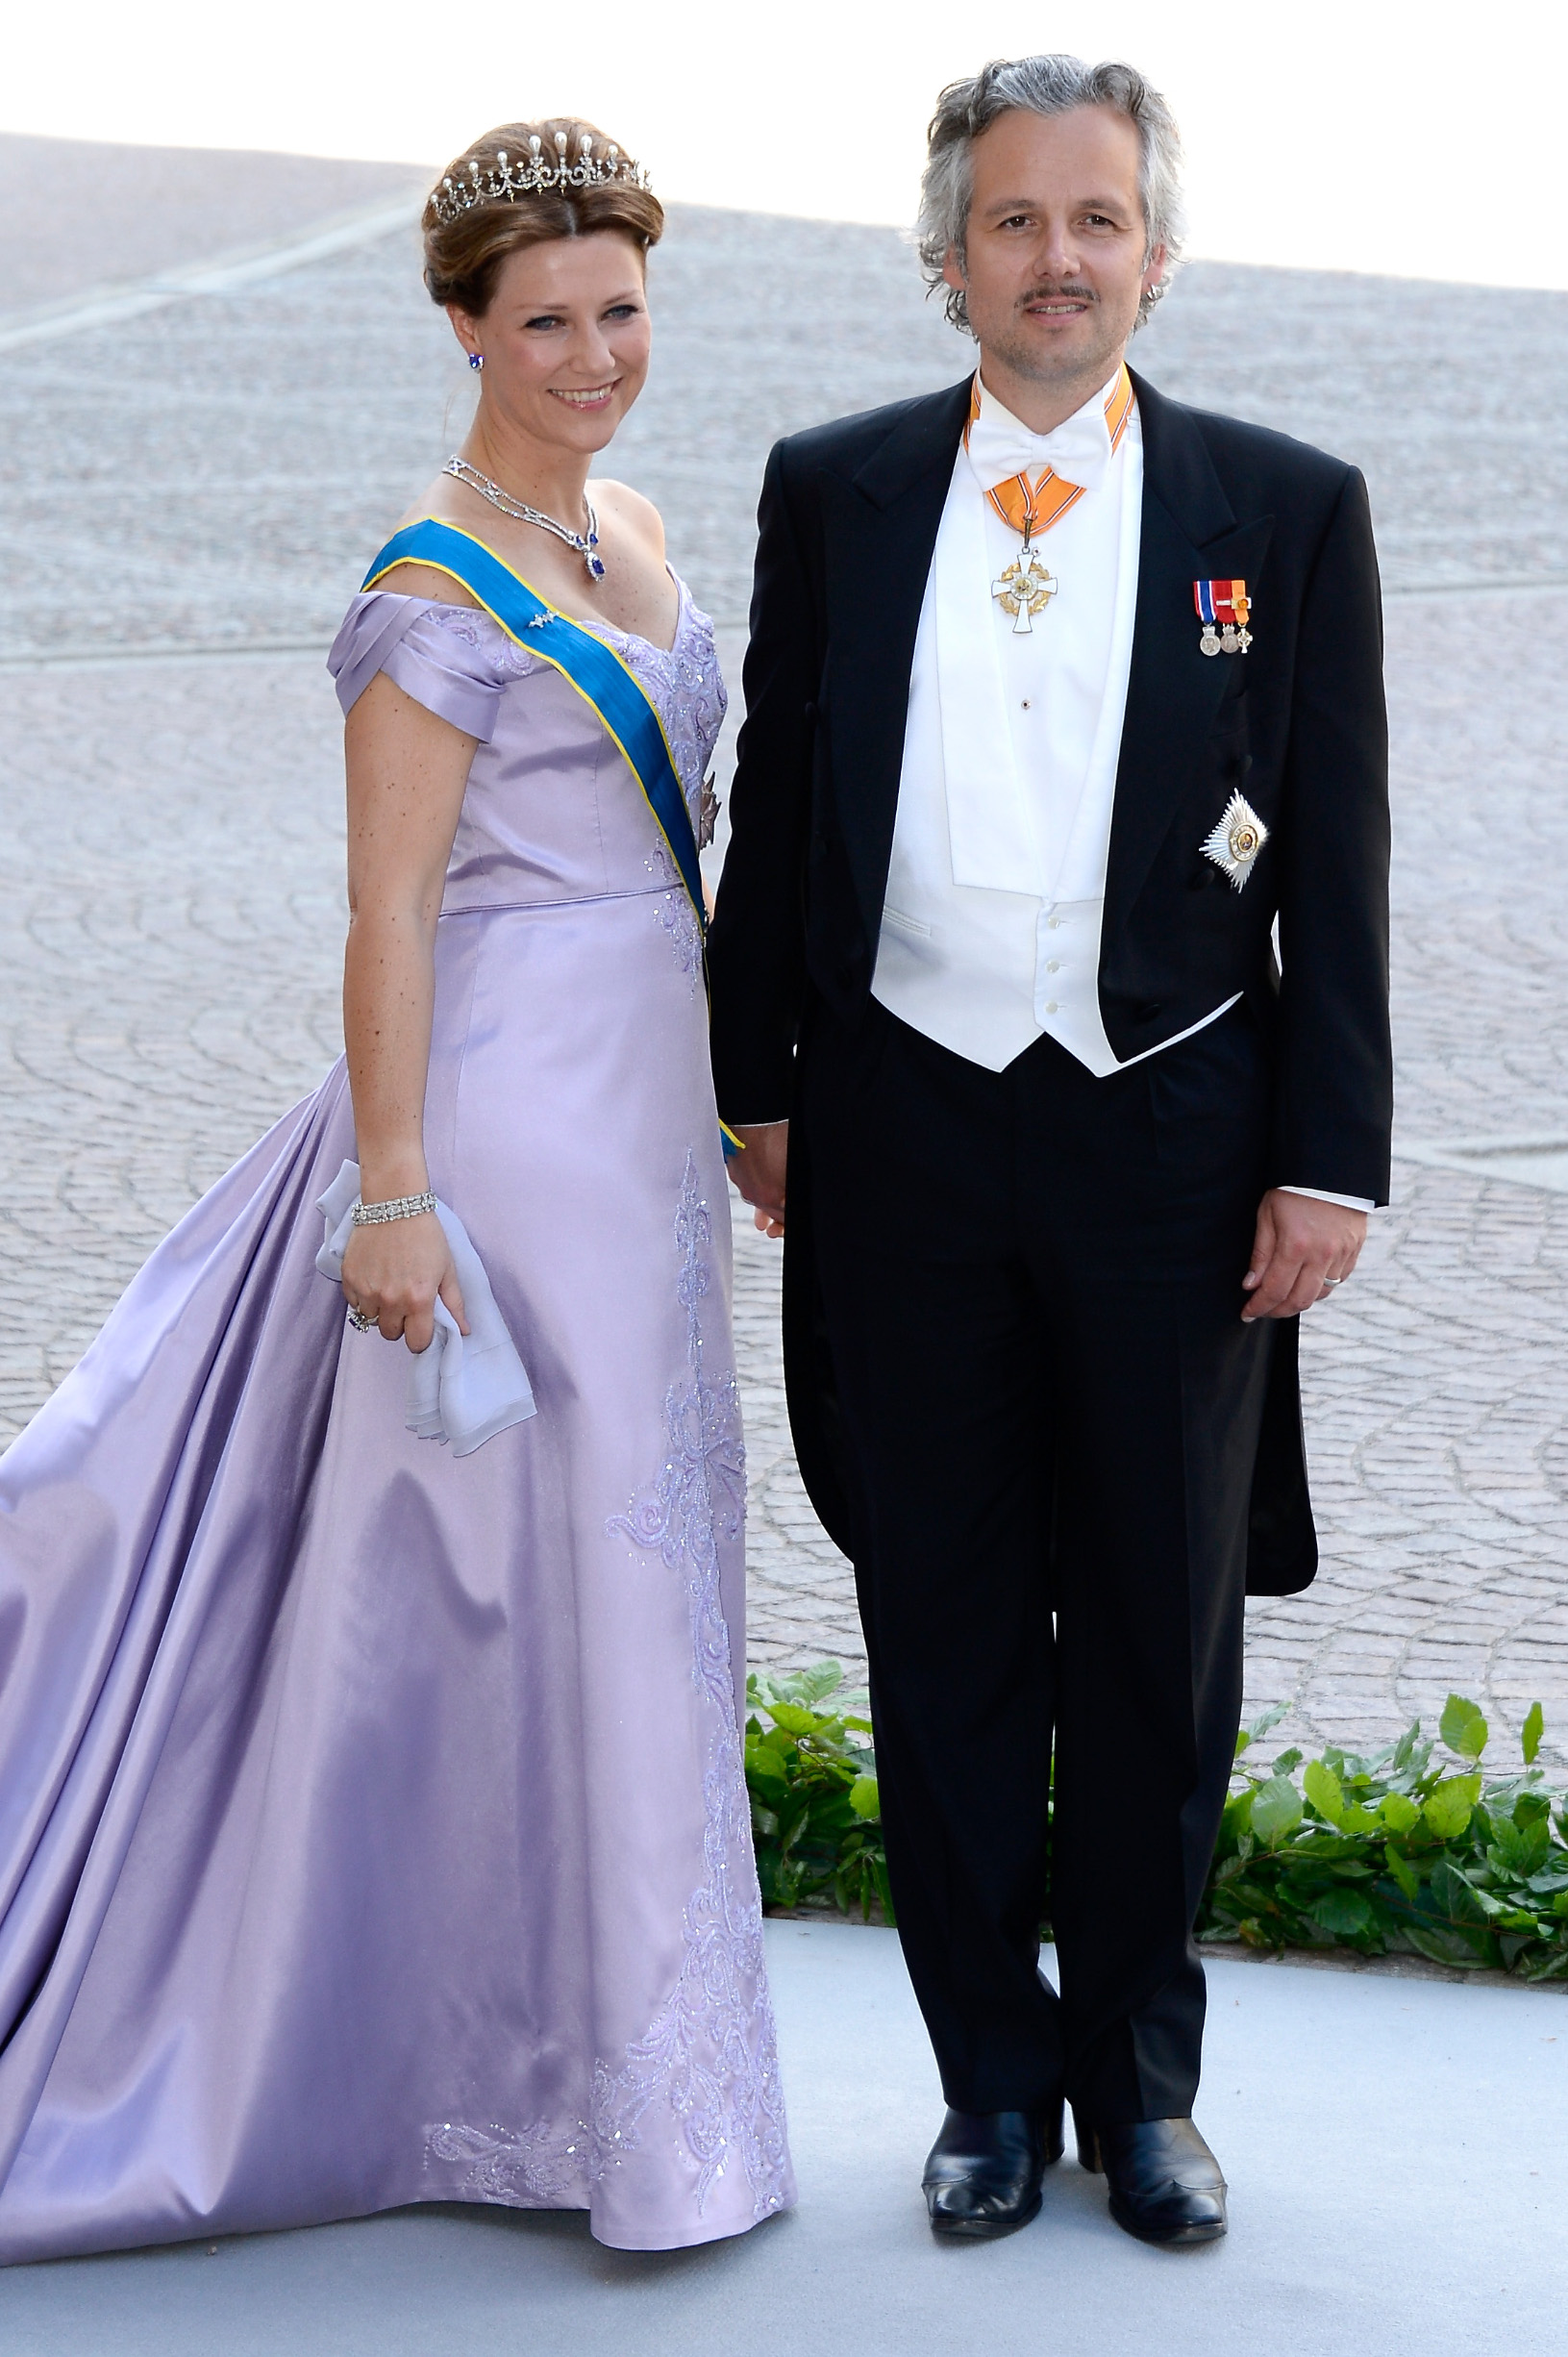 STOCKHOLM, SWEDEN - JUNE 08:  Princess Martha Louise of Norway and Ari Mikael Behn attend the wedding of Princess Madeleine of Sweden and Christopher O'Neill hosted by King Carl Gustaf XIV and Queen Silvia at The Royal Palace on June 8, 2013 in Stockholm, Sweden.  (Photo by Pascal Le Segretain/Getty Images)